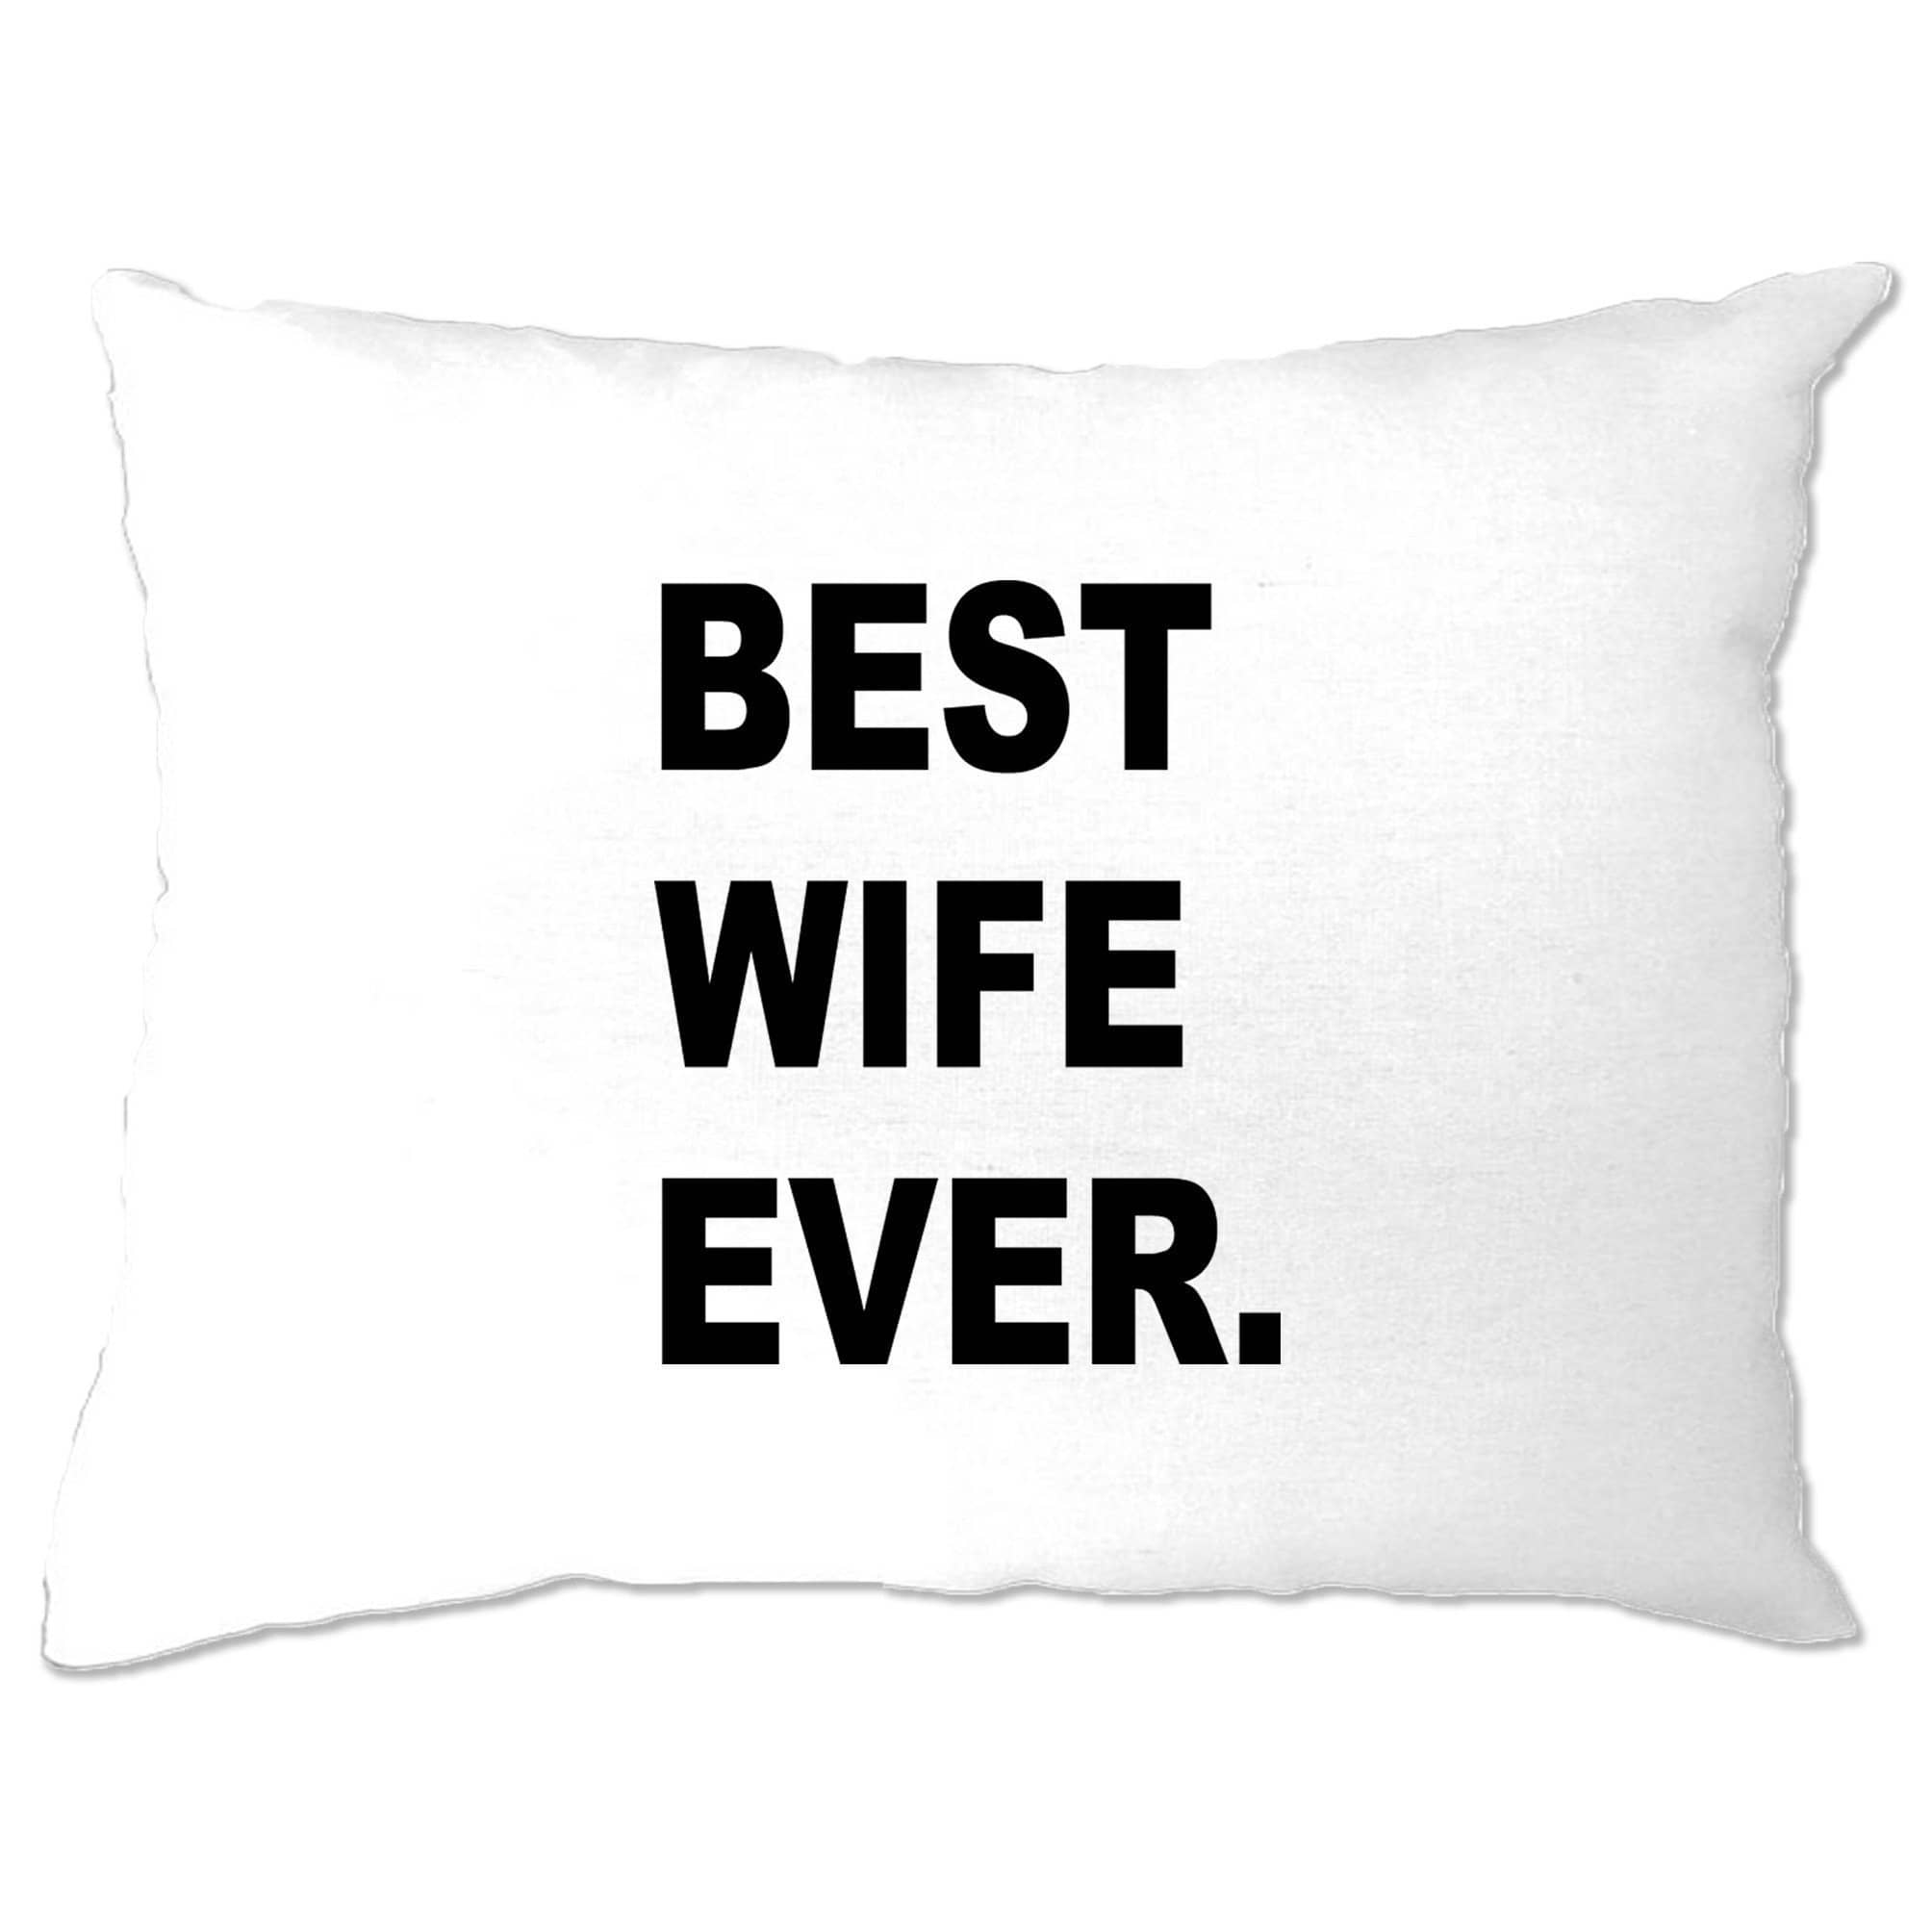 Best Wife Ever Pillow Case Marriage Family Slogan